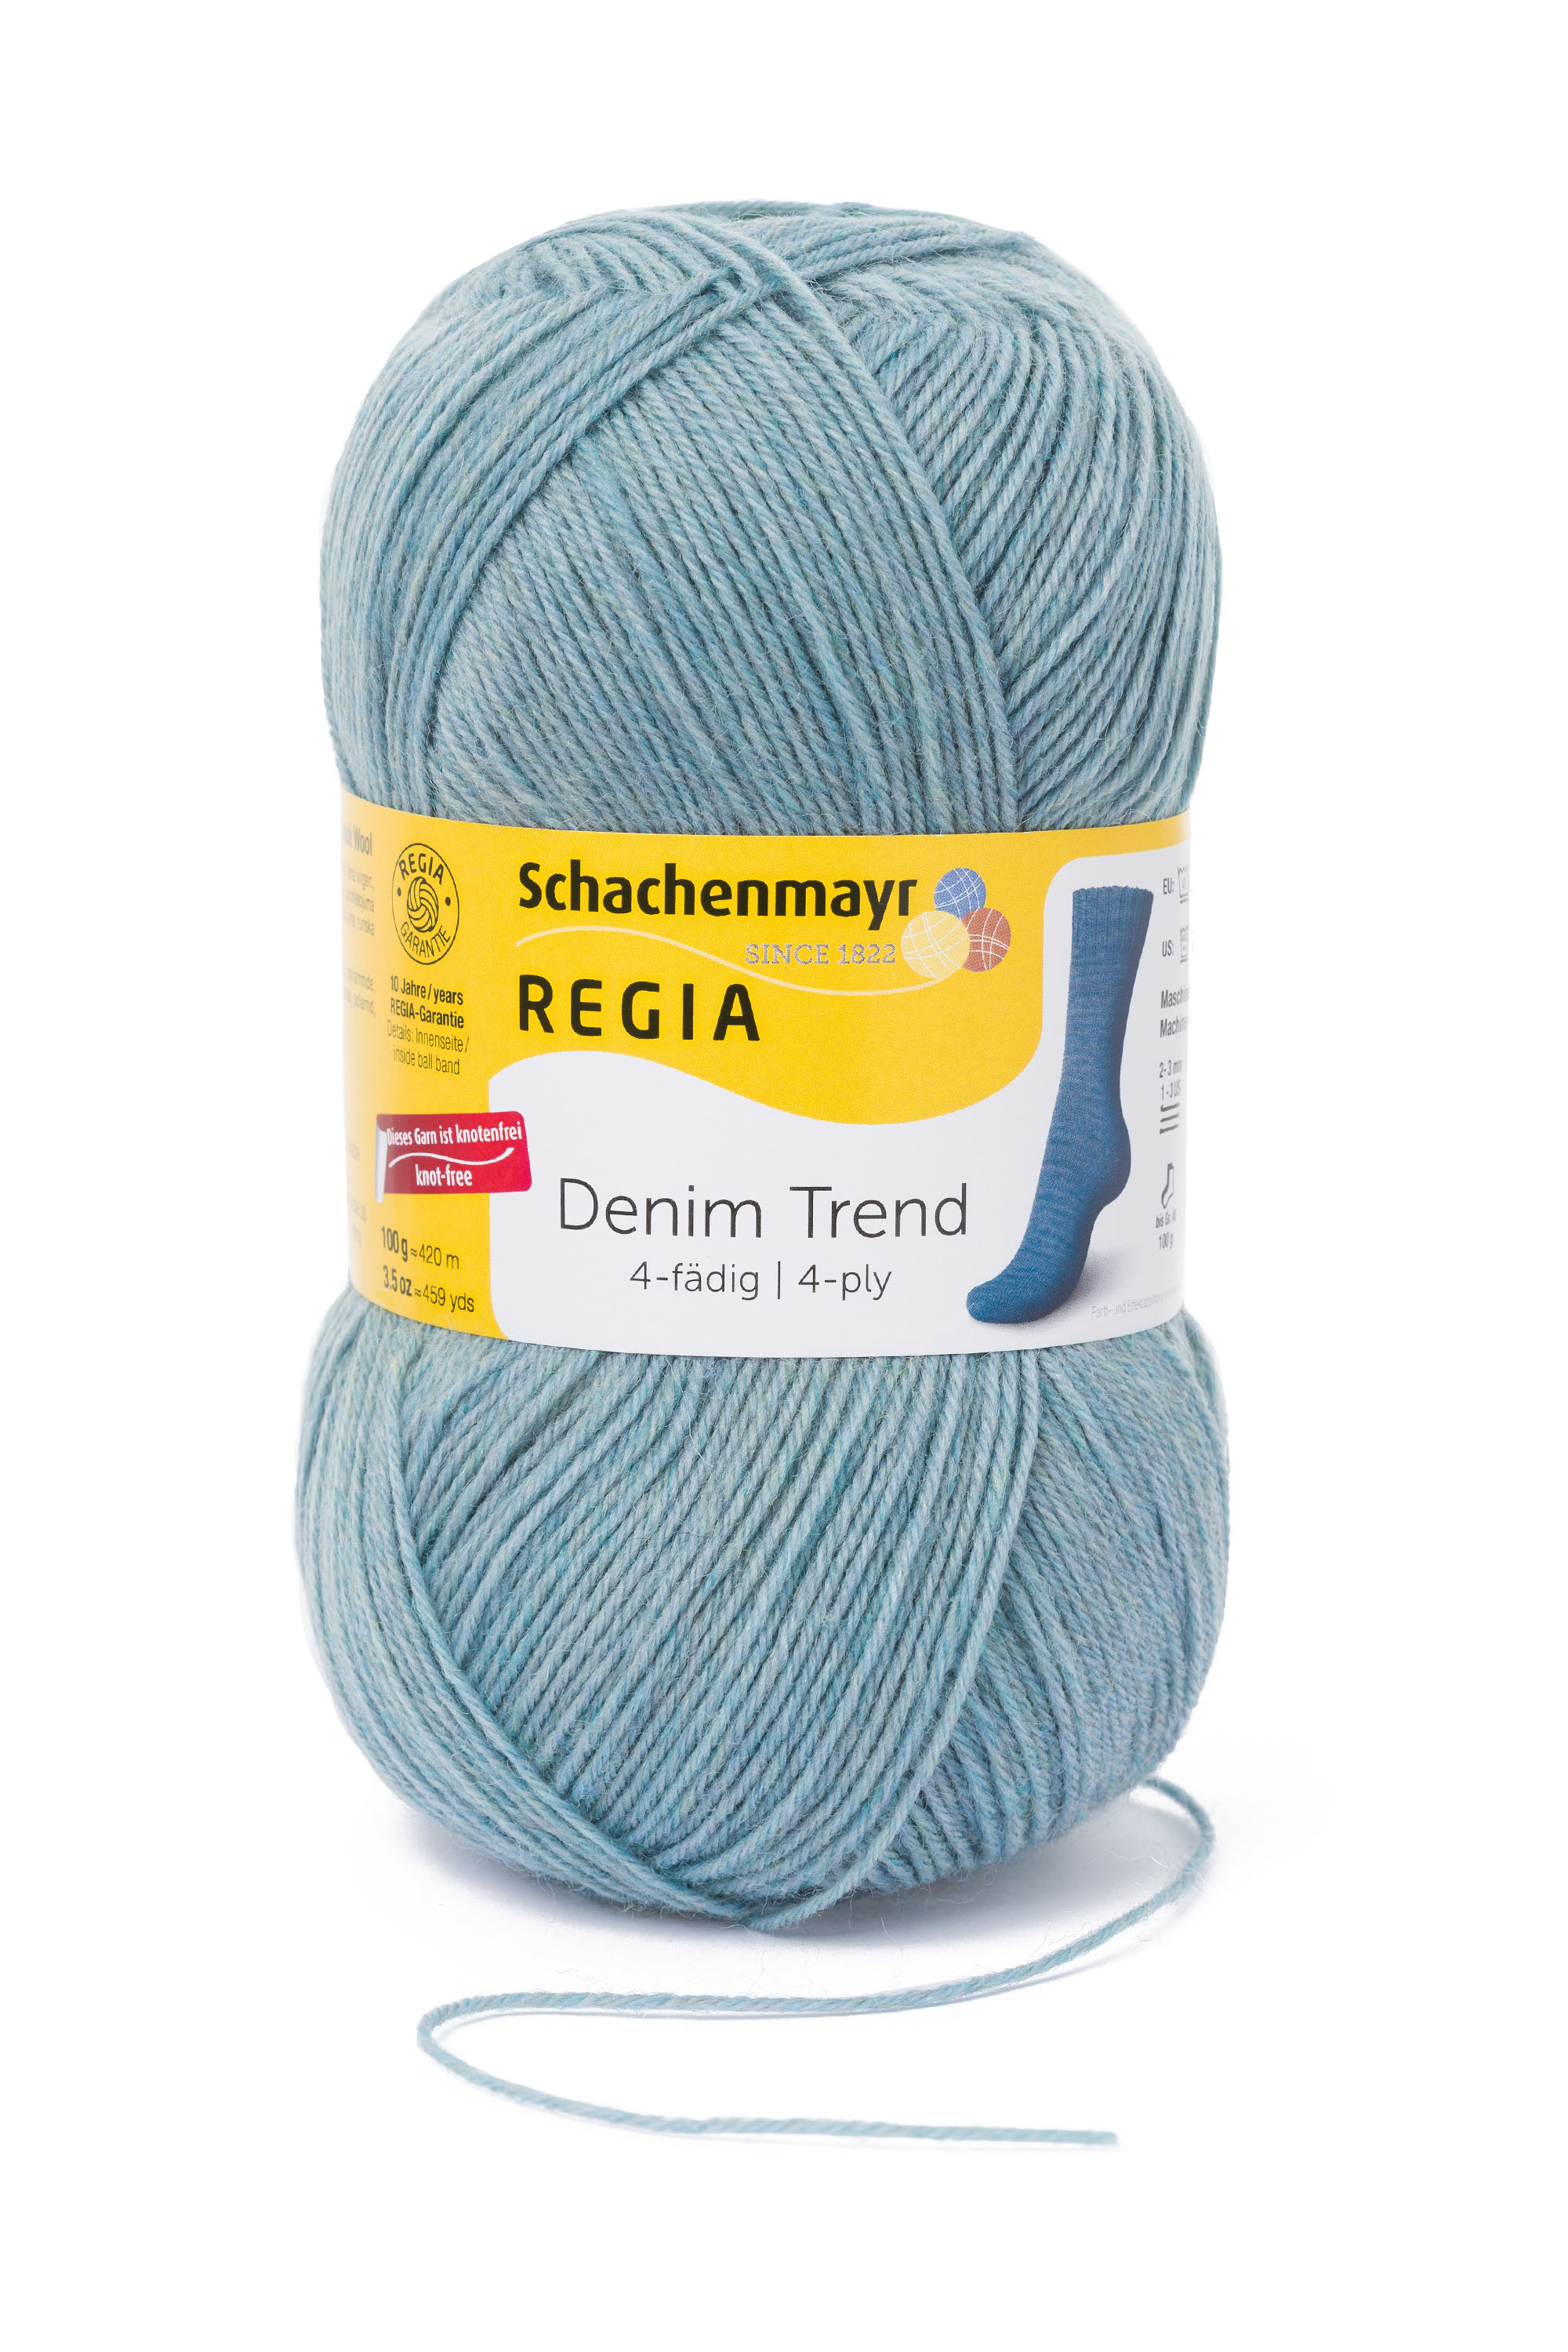 schachenmayr regia denim trend 4 ply knitting crochet yarn. Black Bedroom Furniture Sets. Home Design Ideas